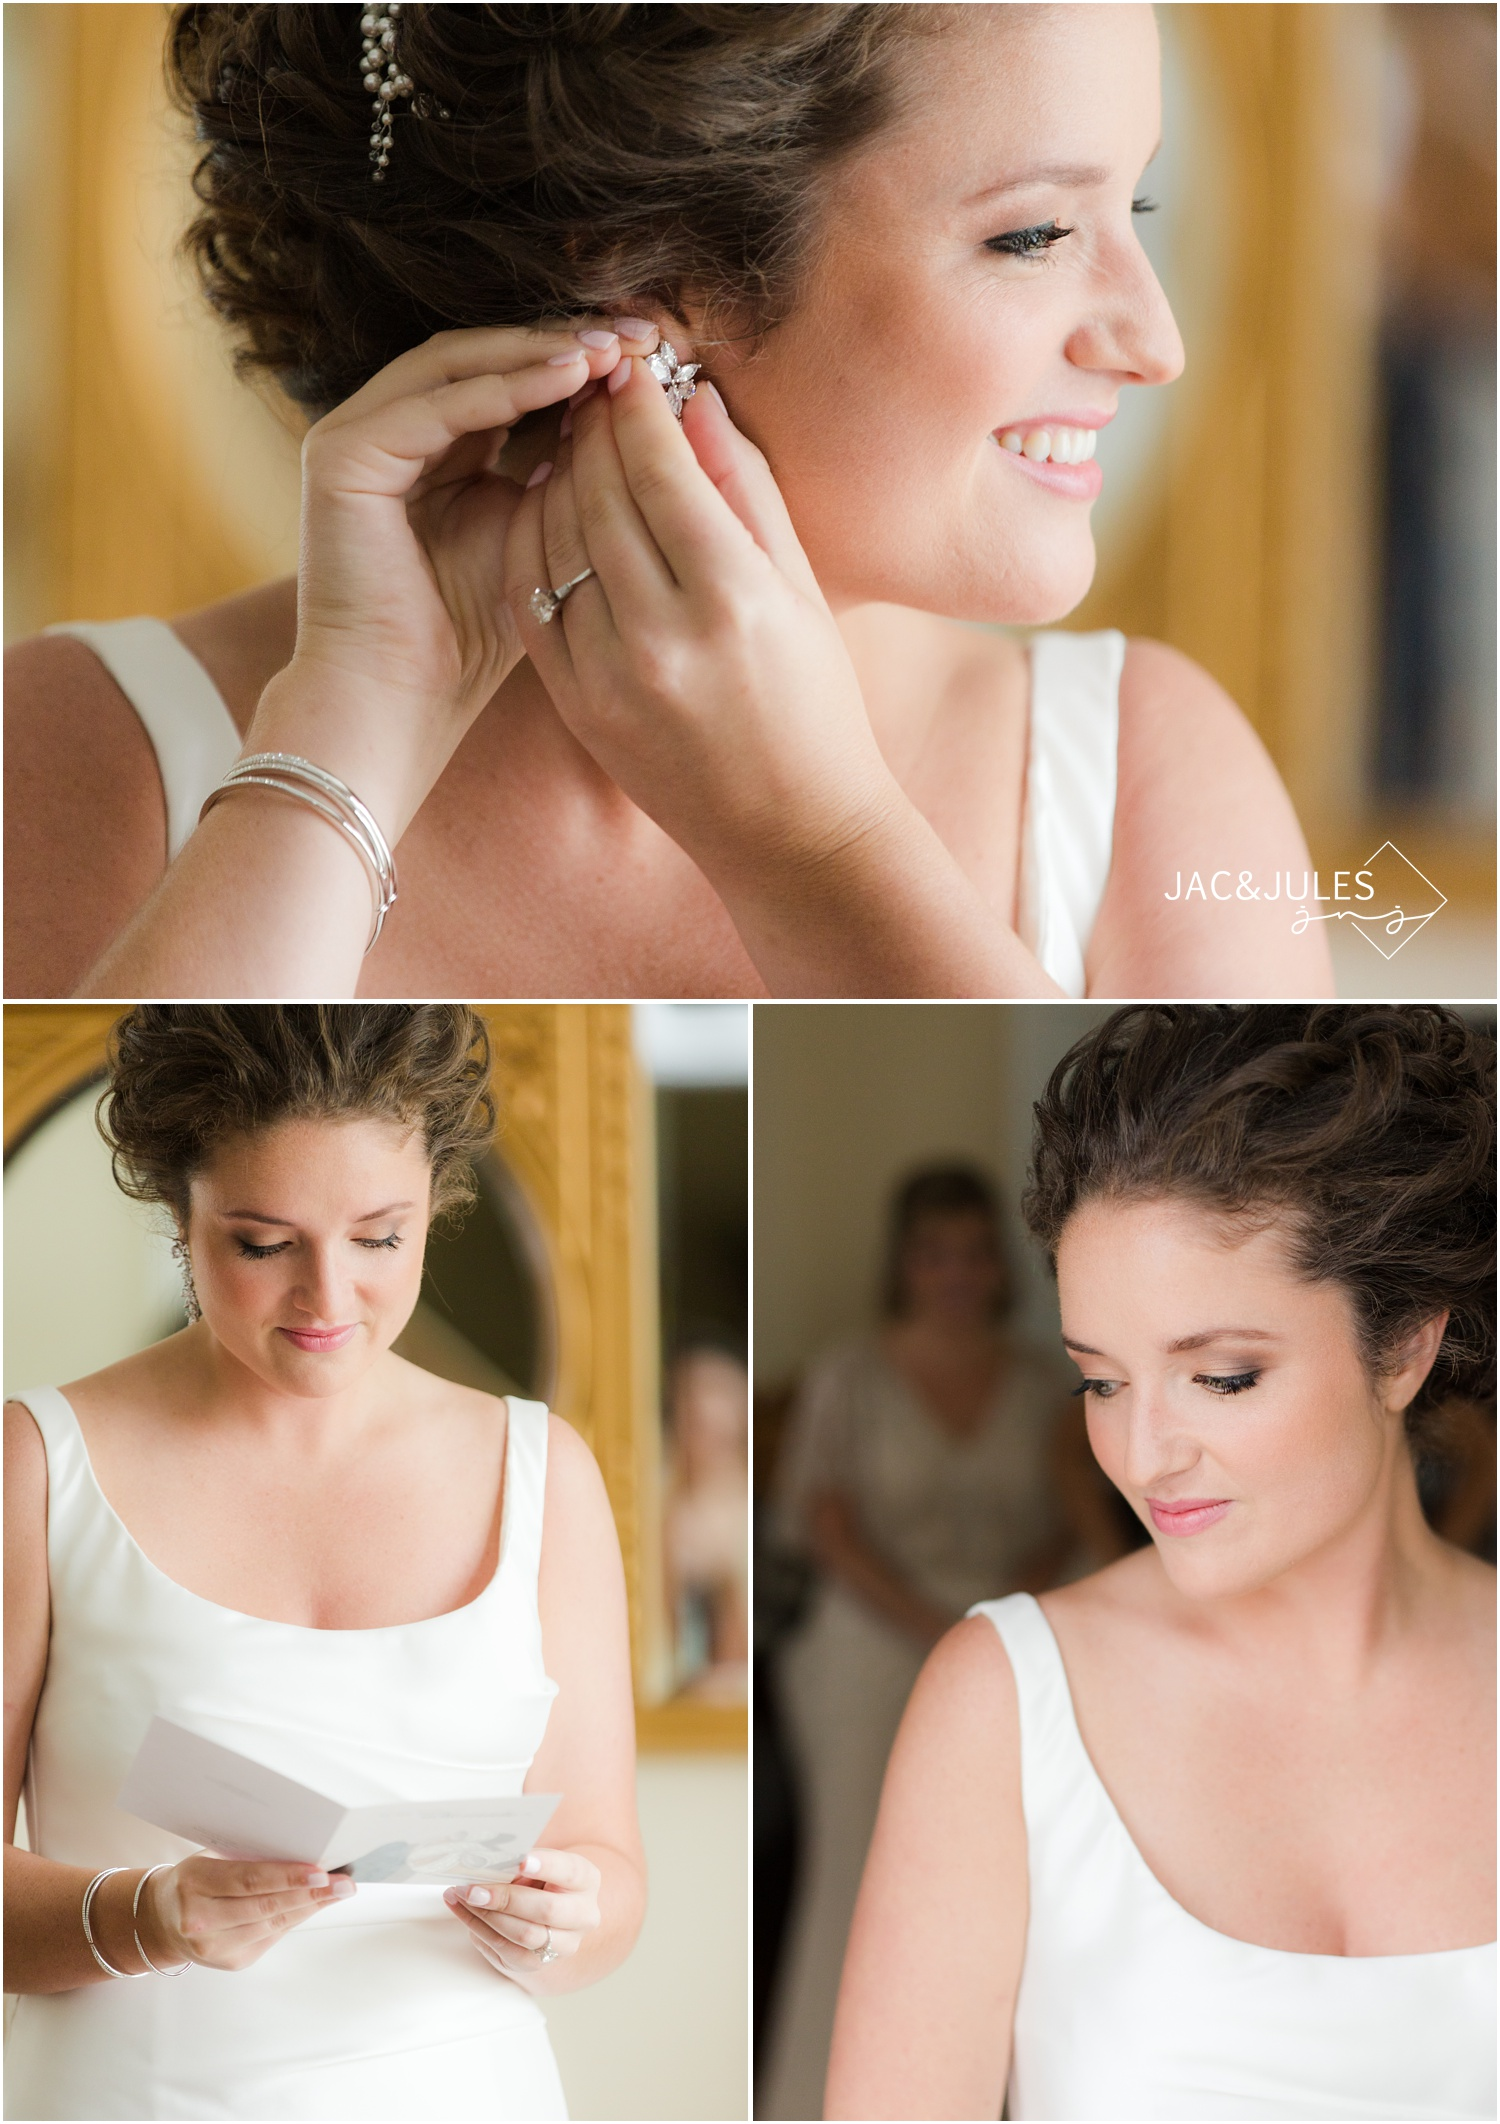 putting on jewelry during bride prep in Manasquan NJ.